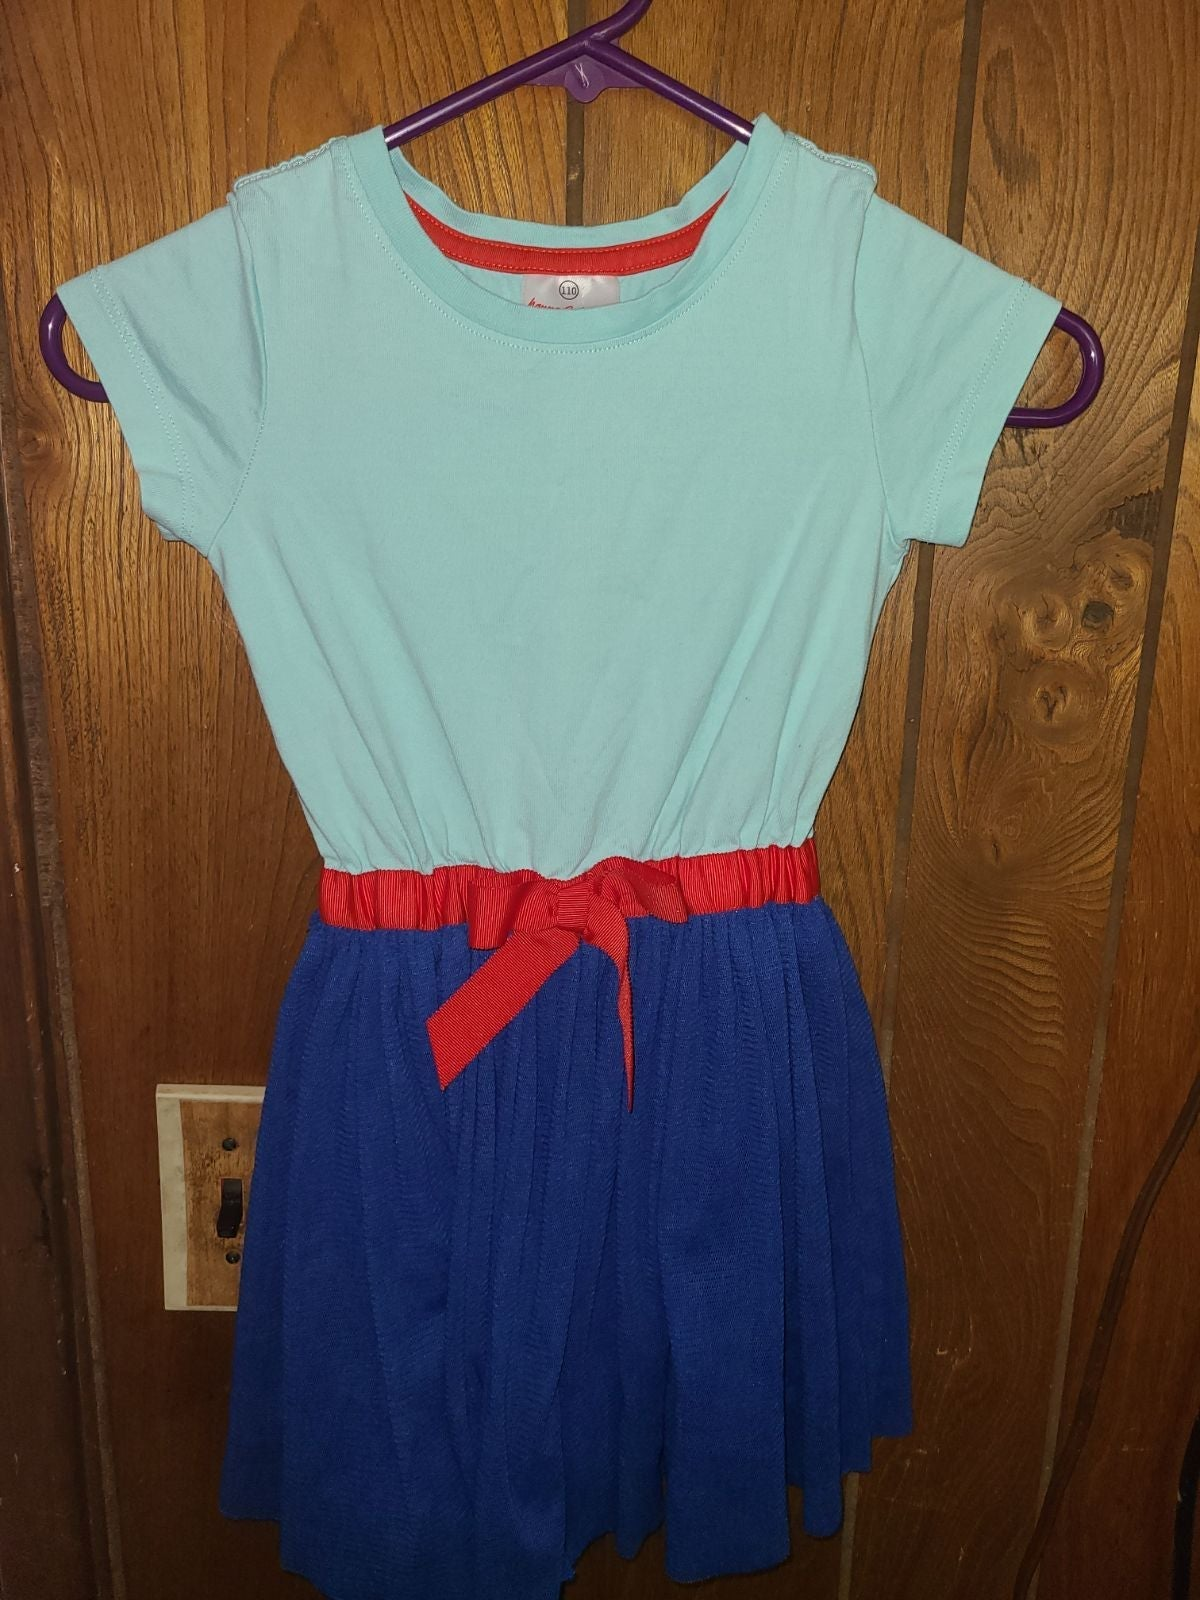 4 Hanna Andersson dresses size 110 or a